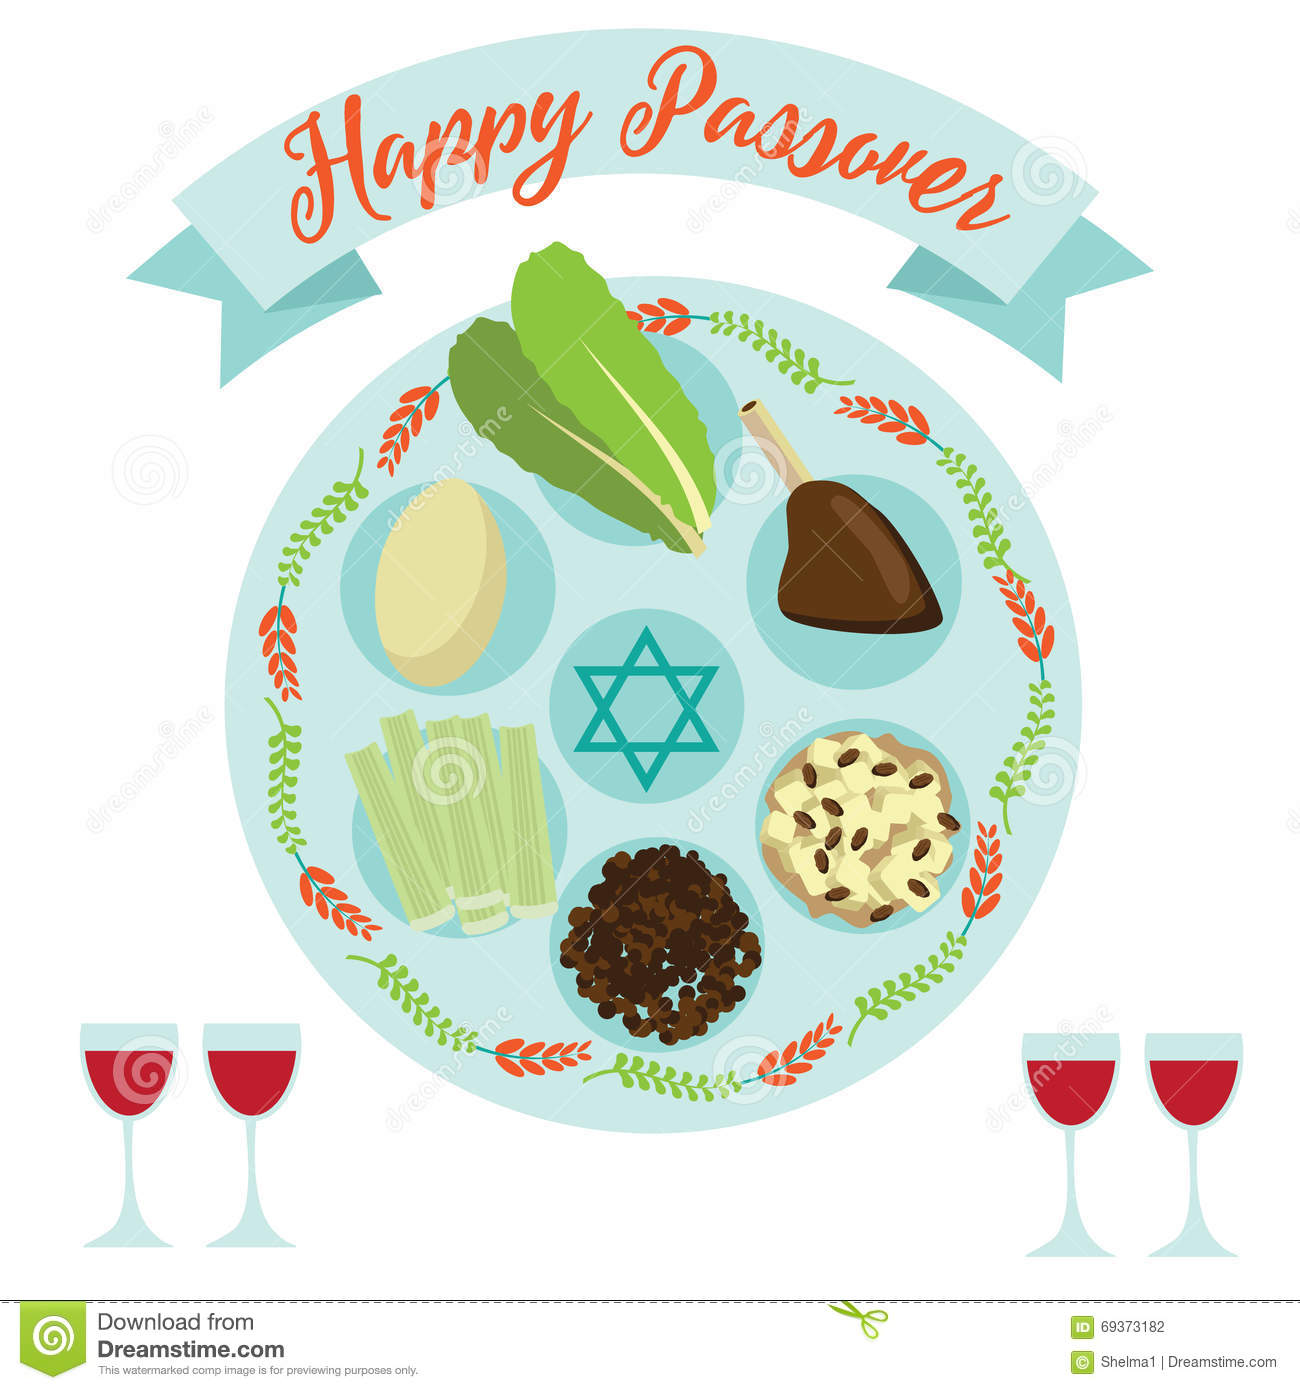 Happy passover seder meal greeting card poster design stock happy passover seder meal greeting card poster design buycottarizona